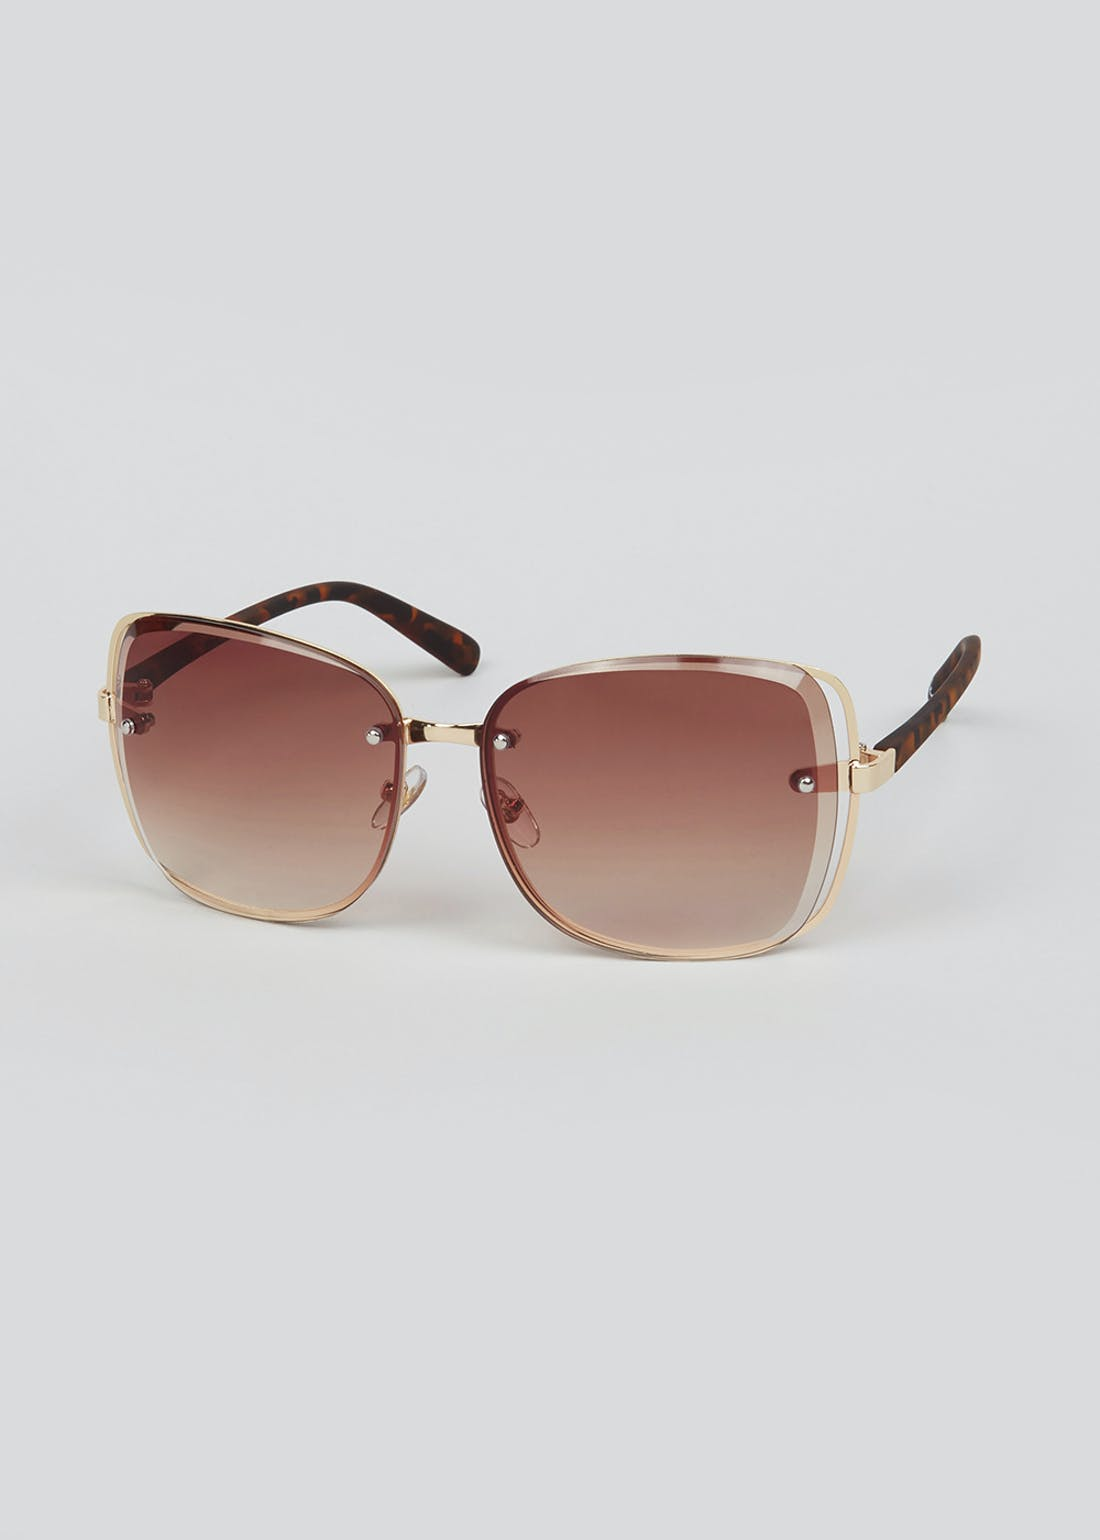 Foster Grant Tinted Oversized Sunglasses